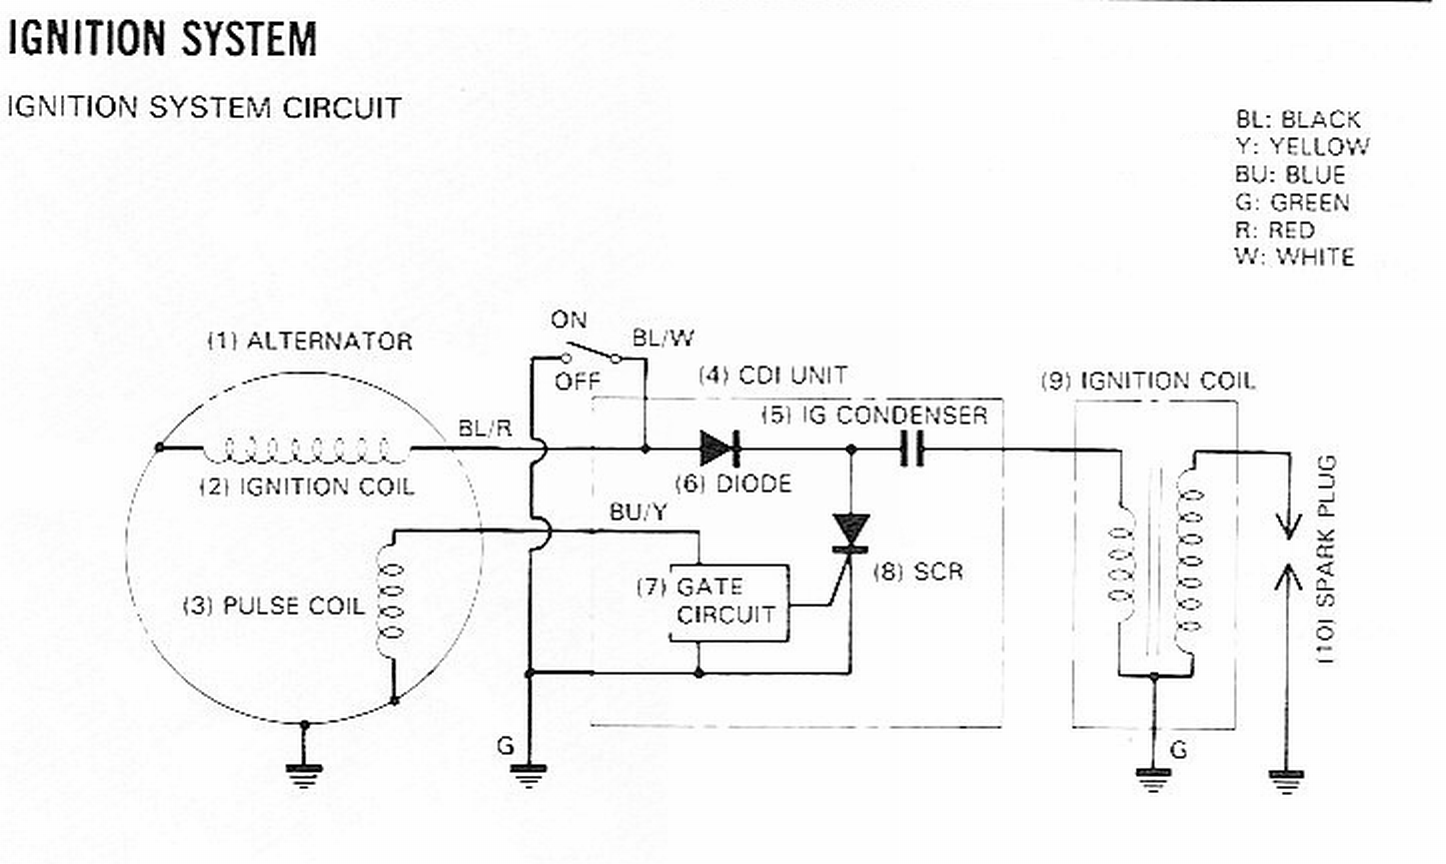 motorcycle electronic ignition wiring diagram wayne s motorcycle on Trailer Wiring Diagram 4 Wheeler Wiring Diagram for is a wiring diagram available for a mp answered by a verified motorcycle mechanic